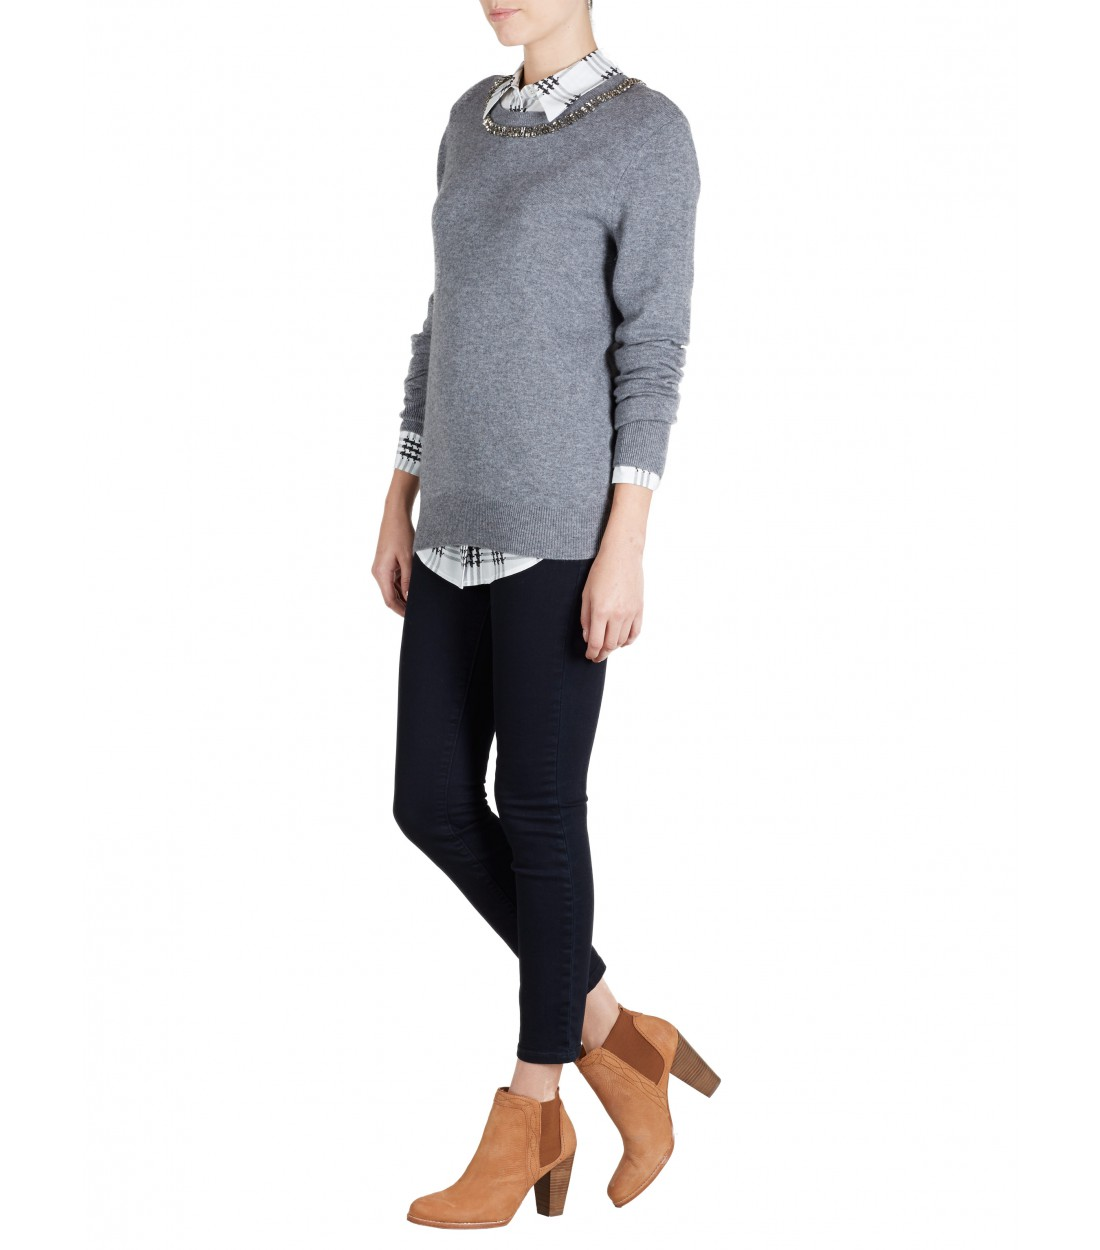 EQUIPMENT Shane Grey / Crystal Neckline | Cashmere Sweater